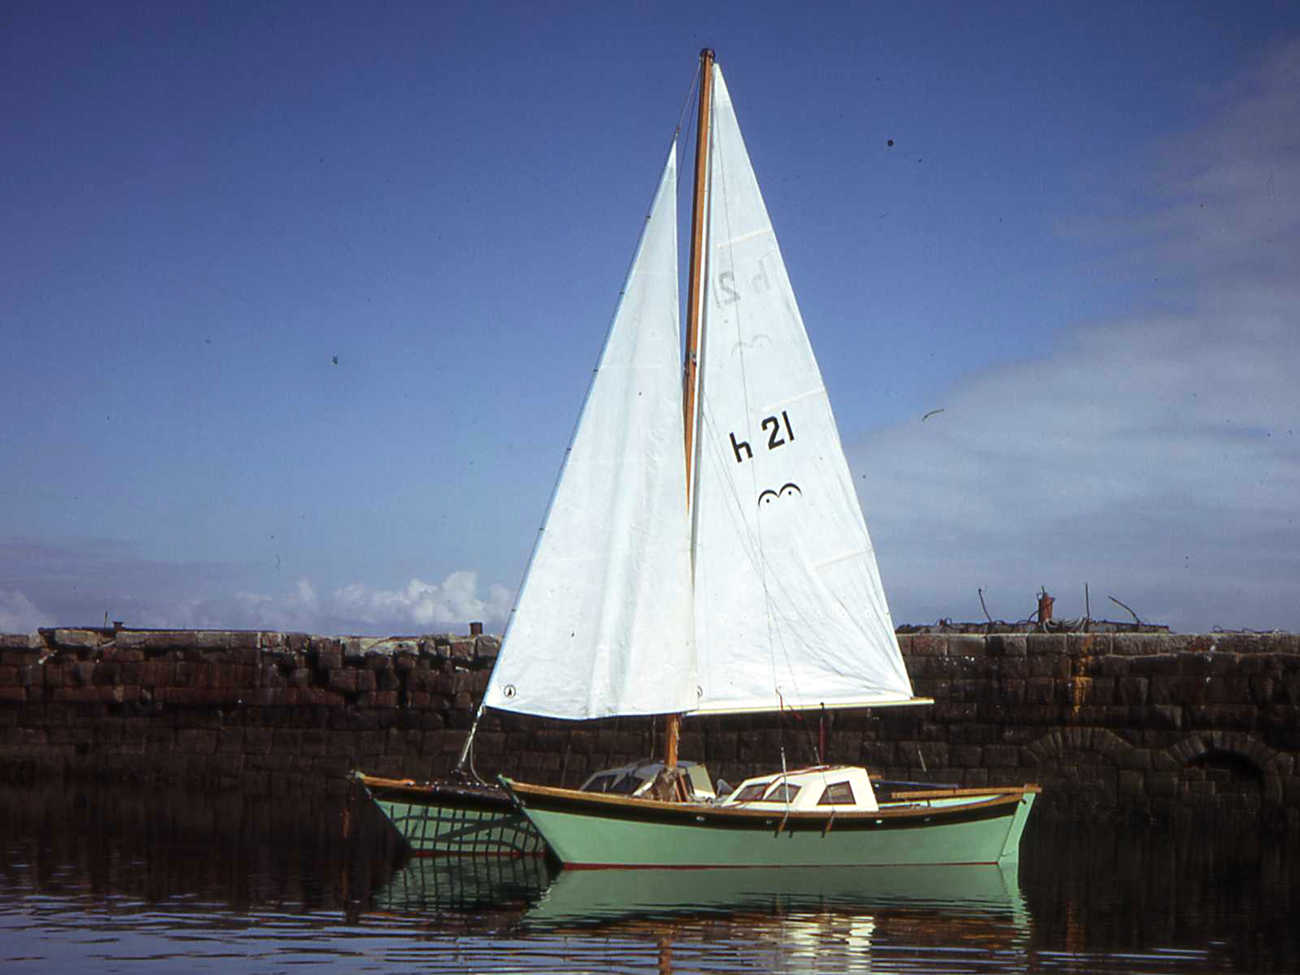 Hinemoa with green hulls and sails up, in a harbour